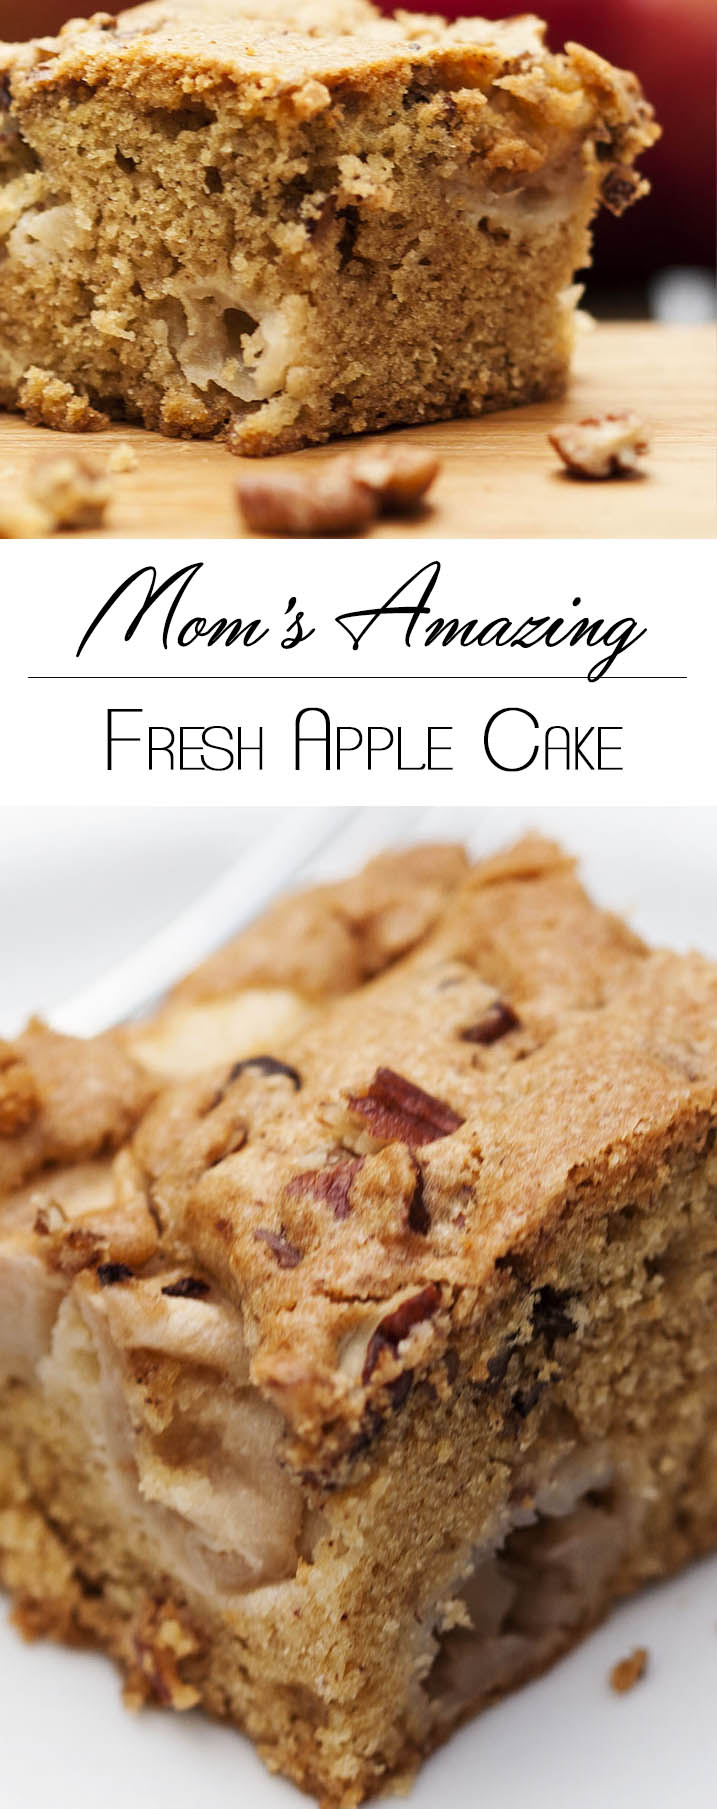 Mom's Amazing Fresh Apple Cake - This cake is so easy, tasty, and full of pecans and apples that it has become a fall tradition in my family from my mom to me. And now to you. | justalittlebitofbacon.com